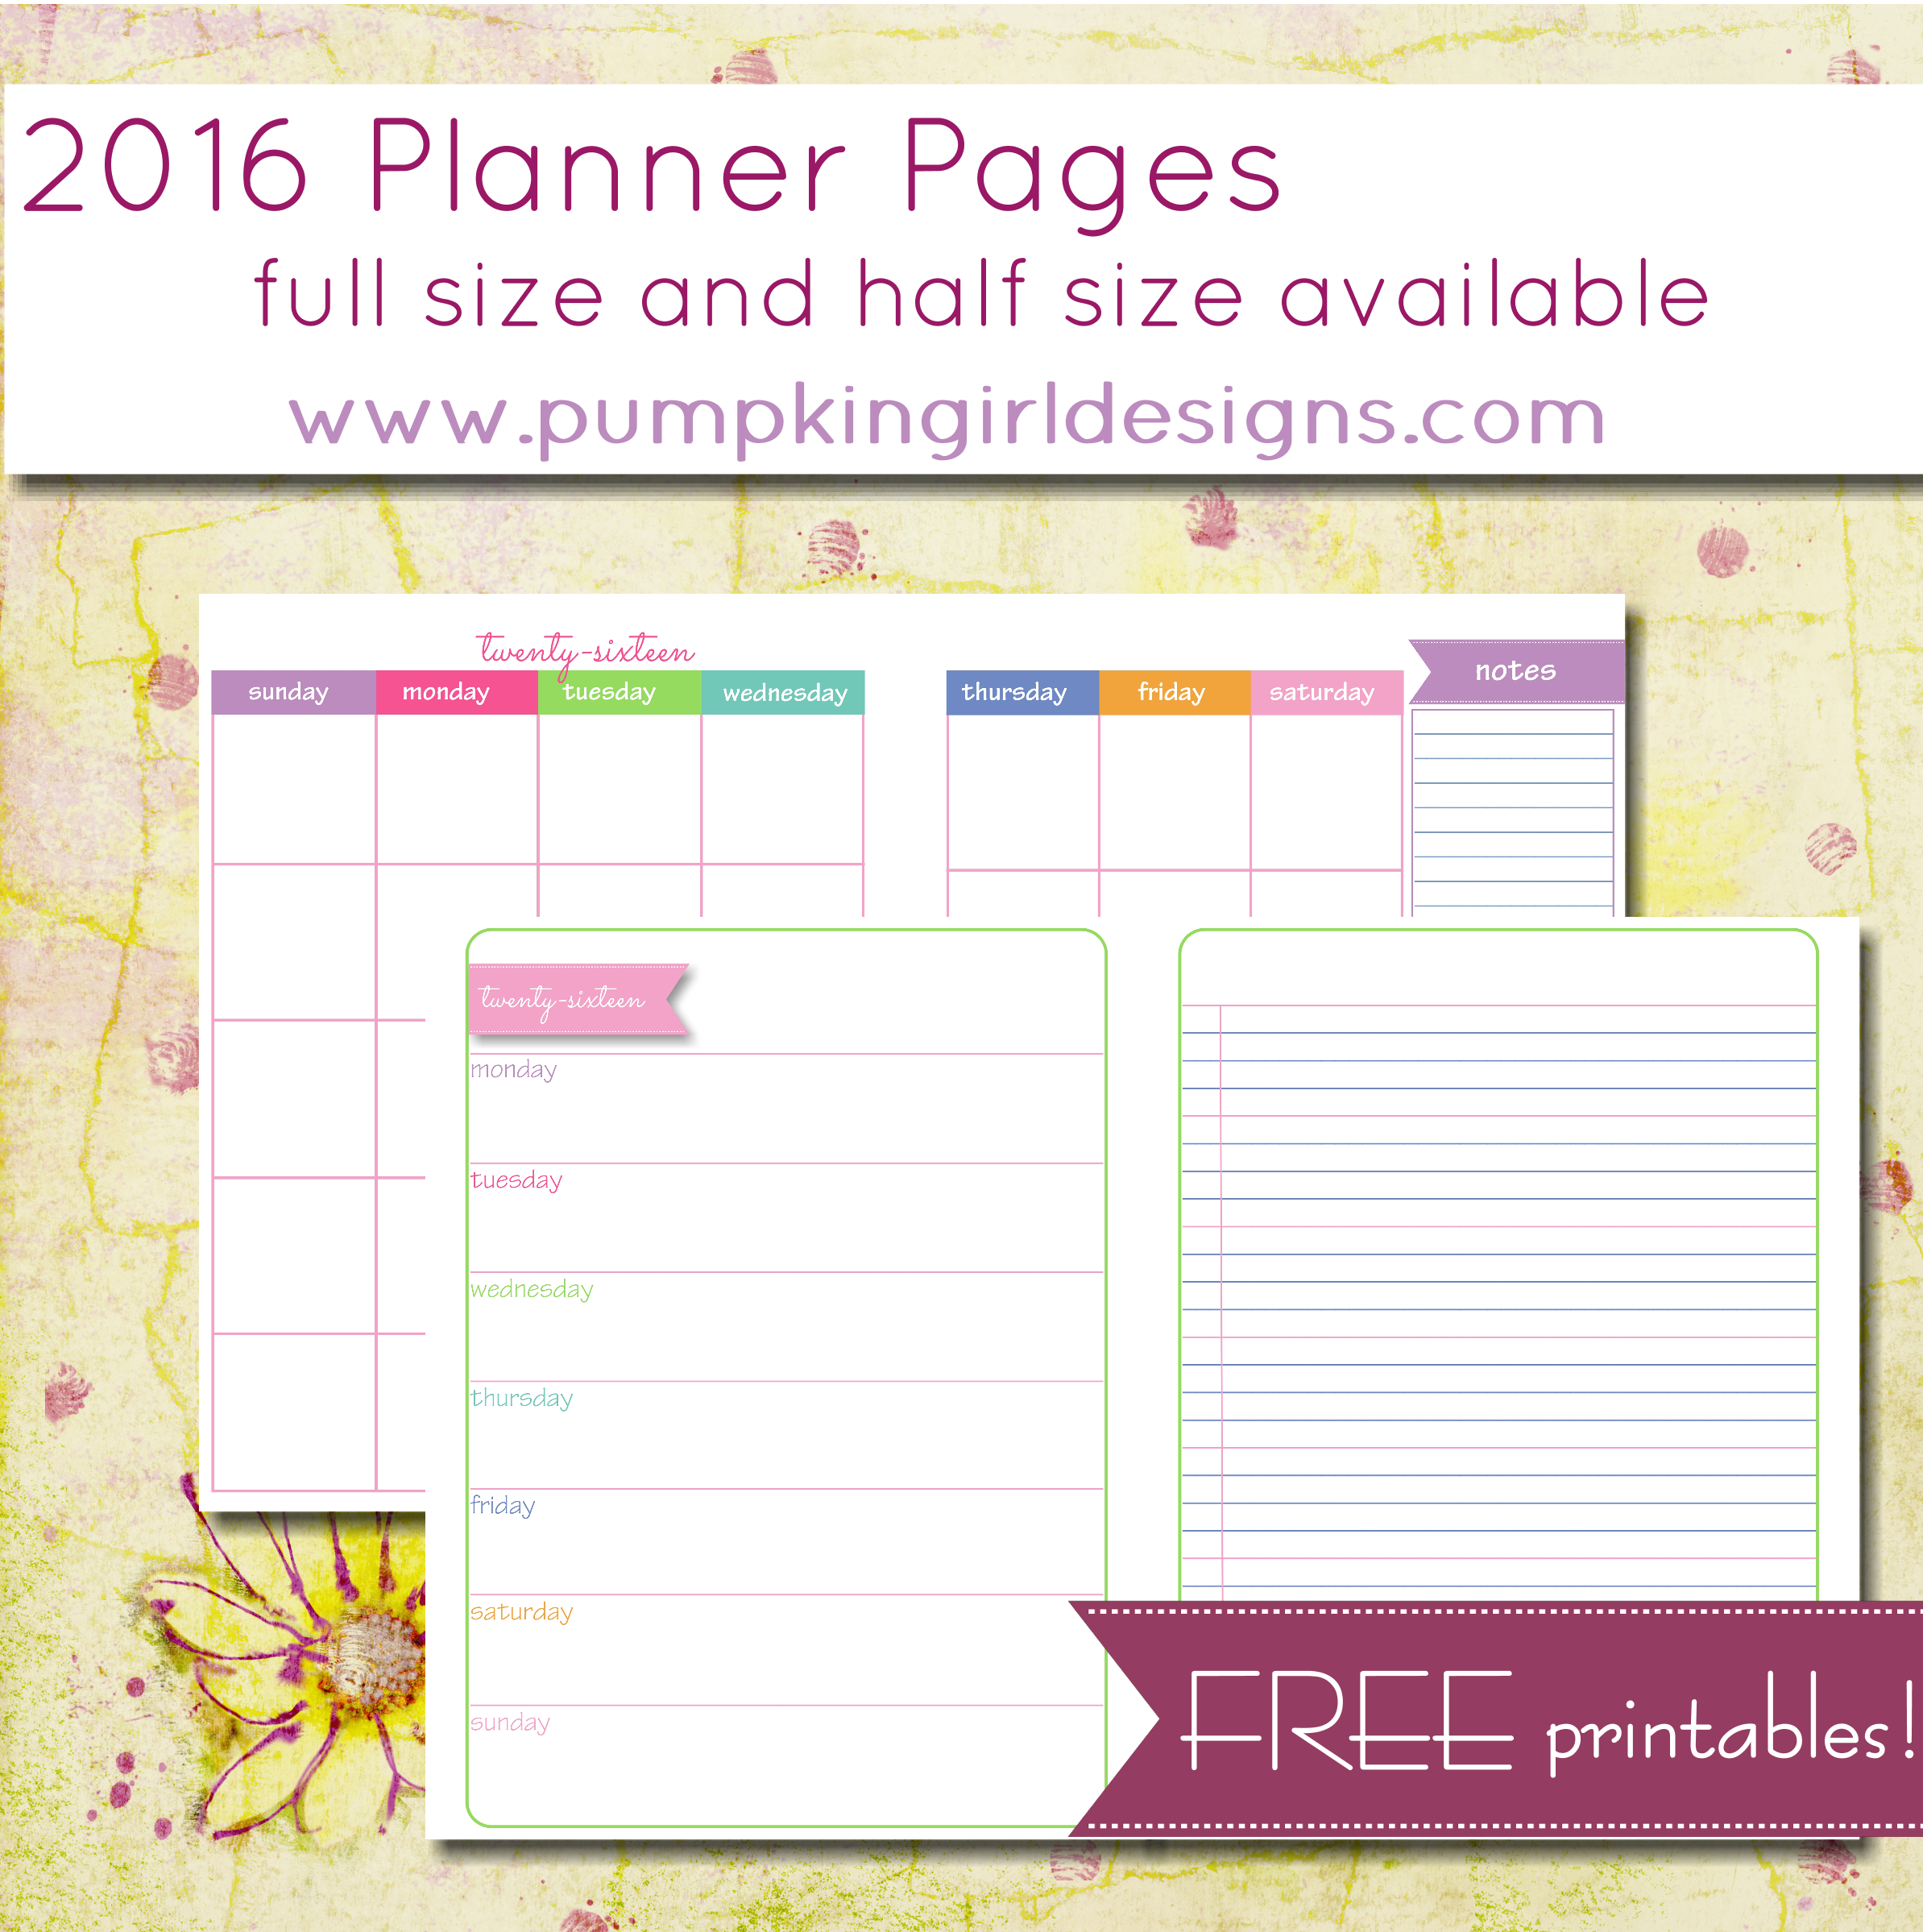 Printable Planner Pages The Mac And Cheese Chronicles